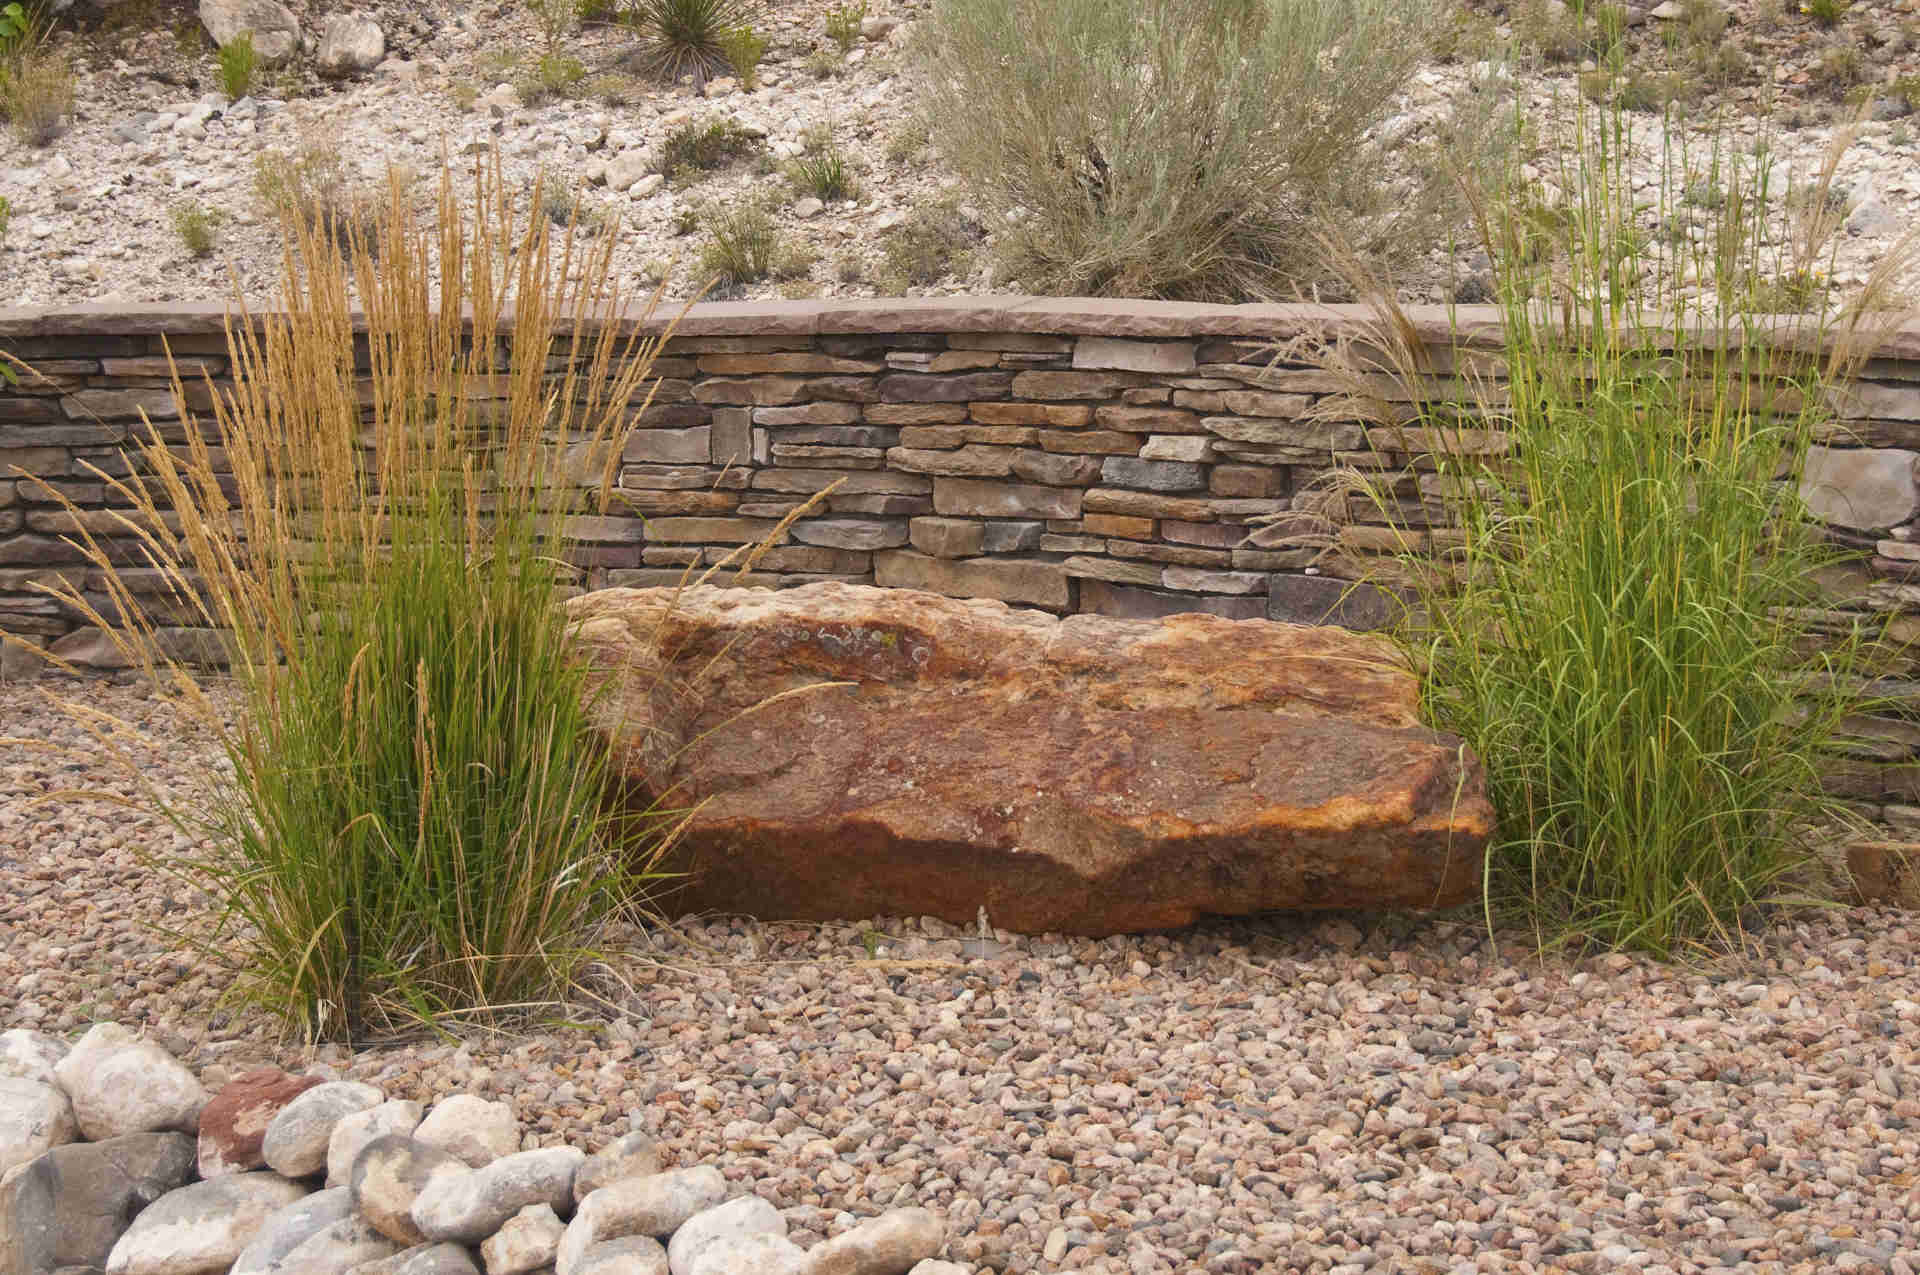 Landscape boulder with tallgrass, a stone retaining wall and decorative gravel